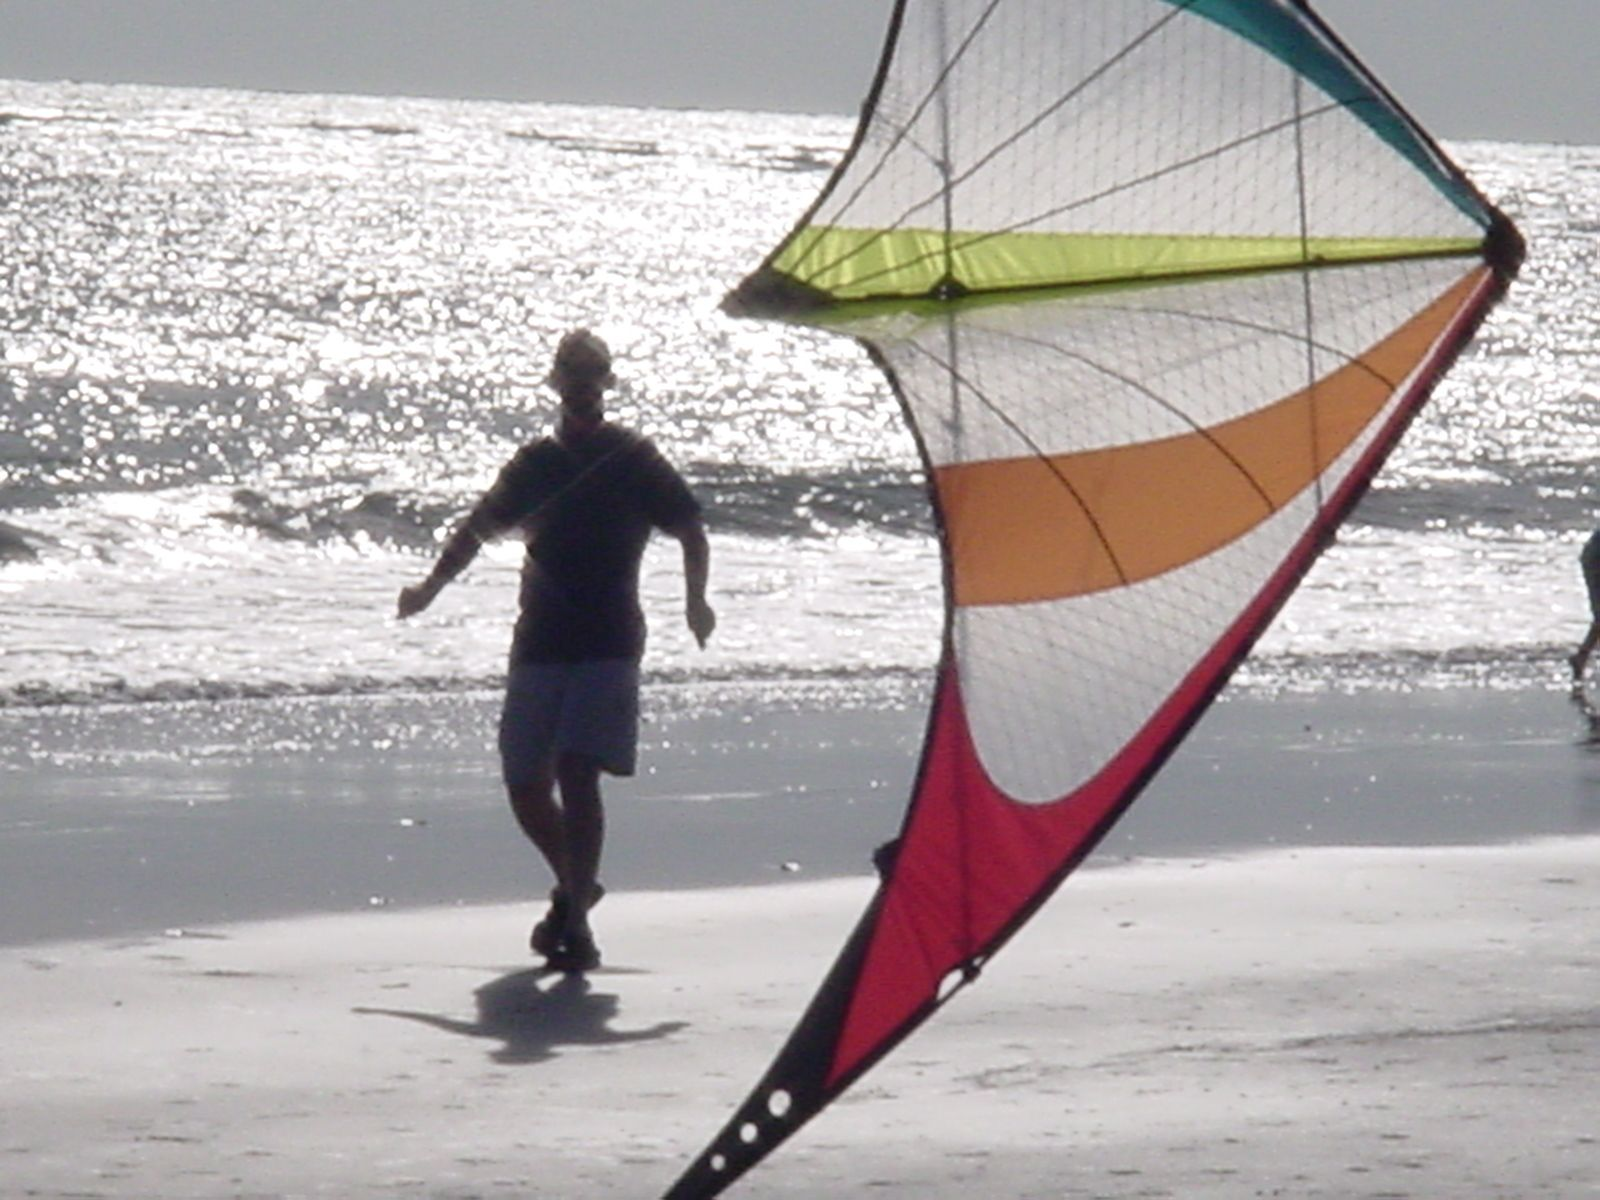 2 Of My Favorite Things Stunt Kites And The Beach